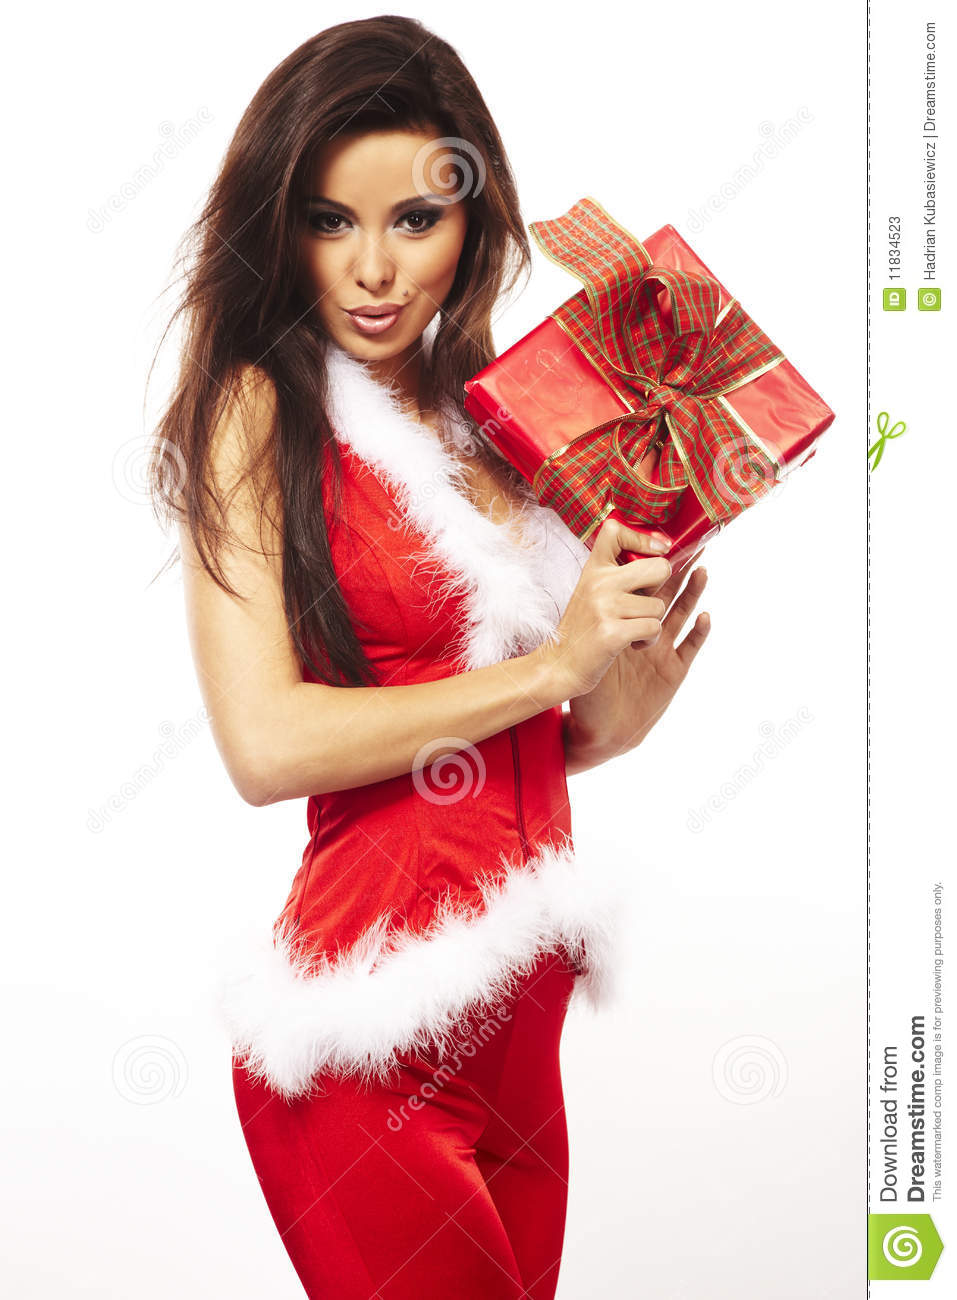 Download Santa Claus And Holding Red Gift On White Stock Image - Image of girl, wavy: 11834523